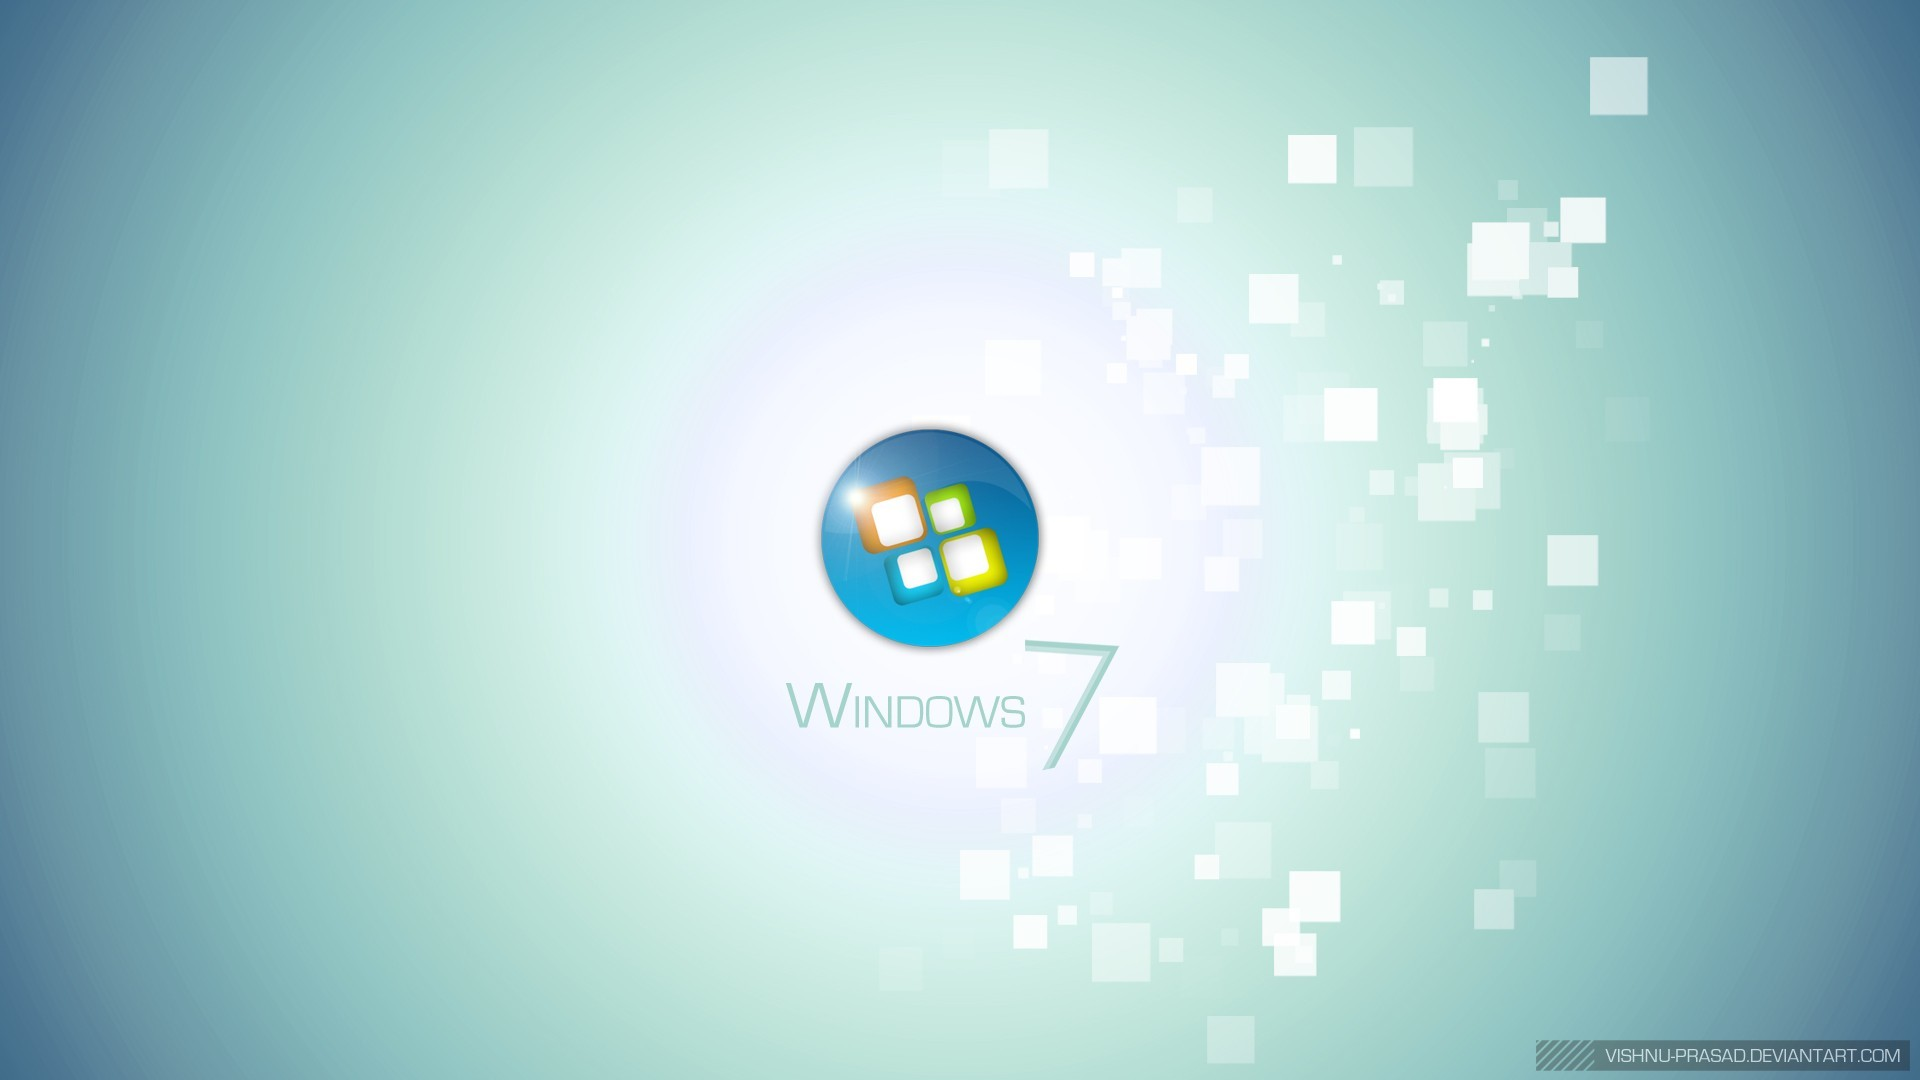 windows 7 microsoft windows HD Wallpaper